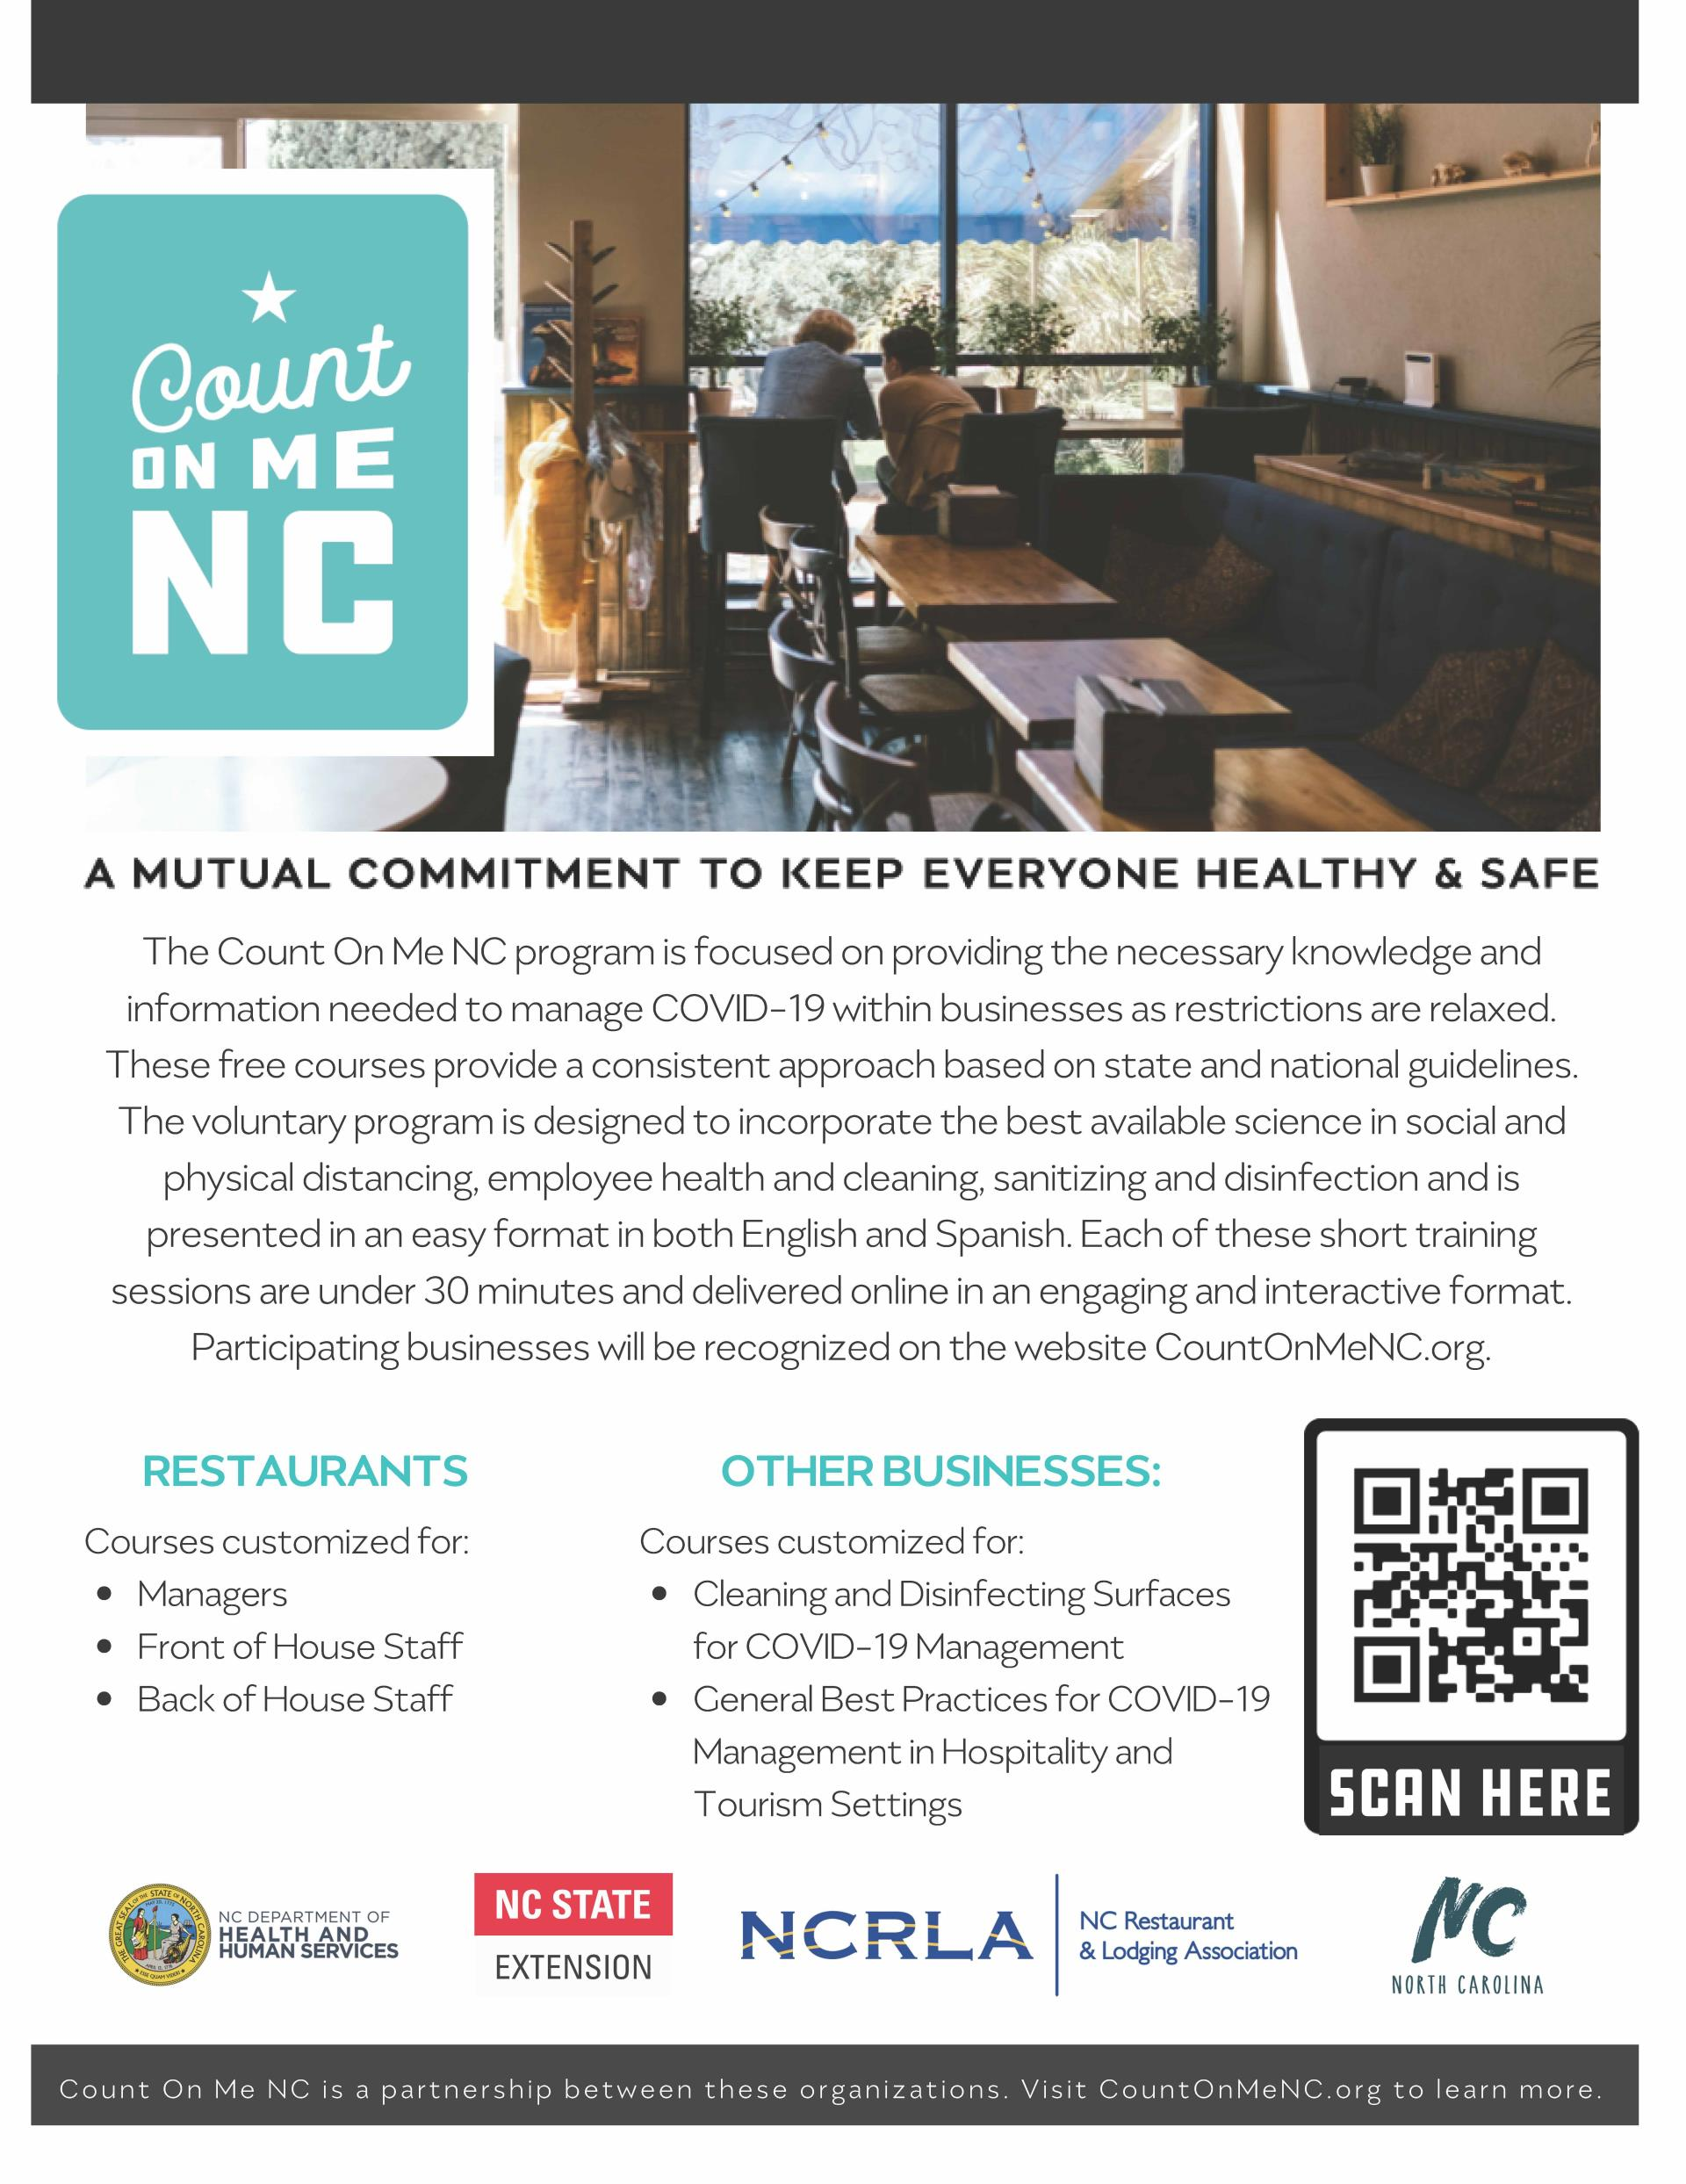 Count on Me NC Program Opens in new window